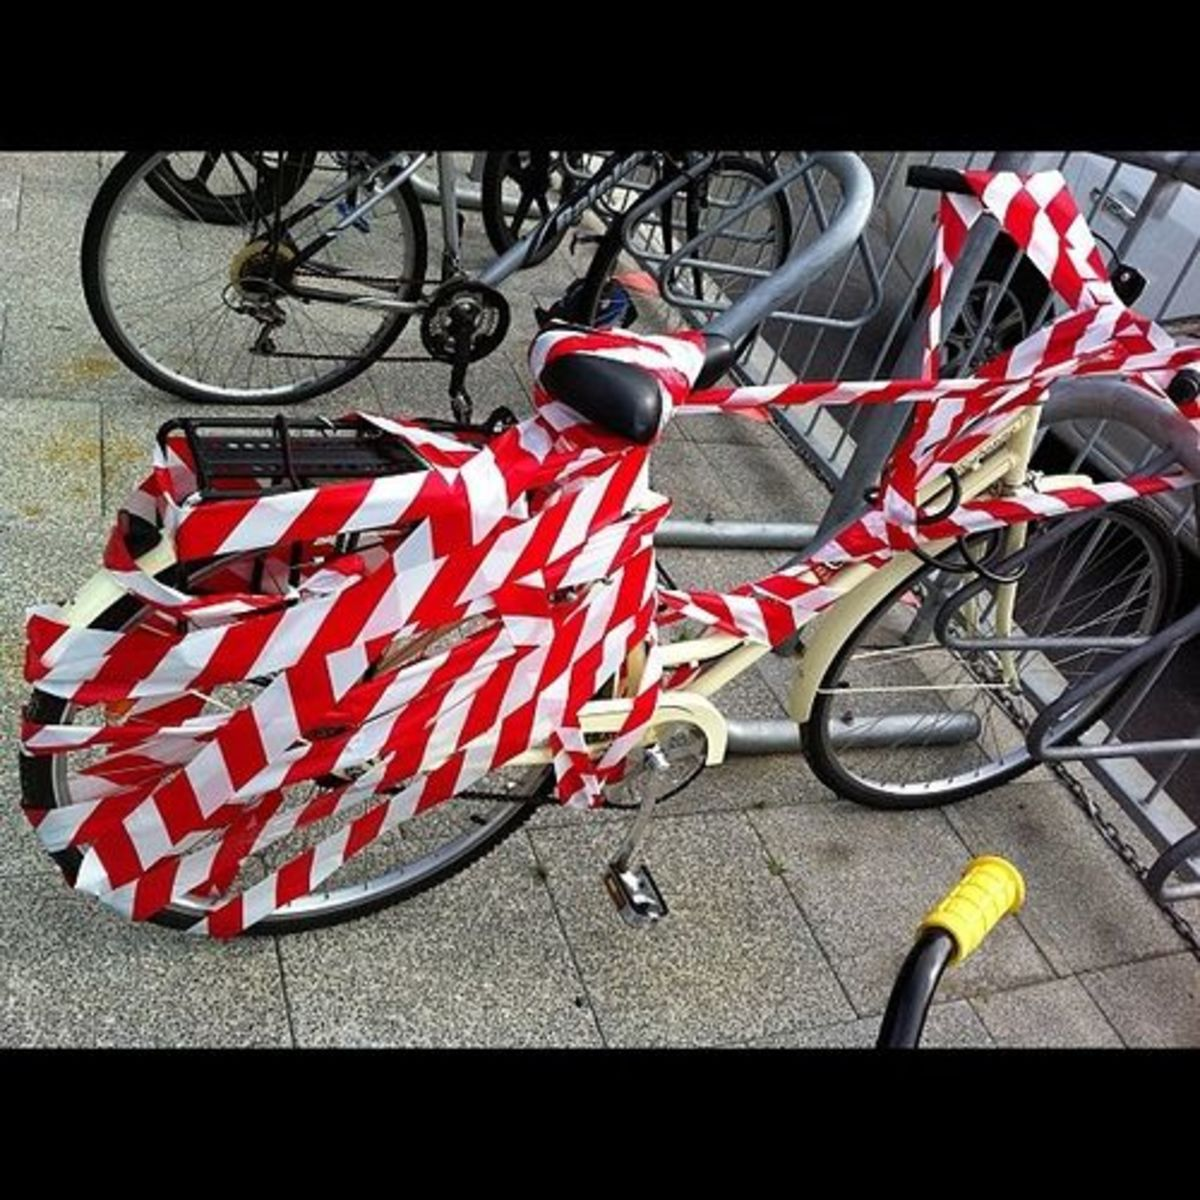 Wrap up the bicycle april fools joke